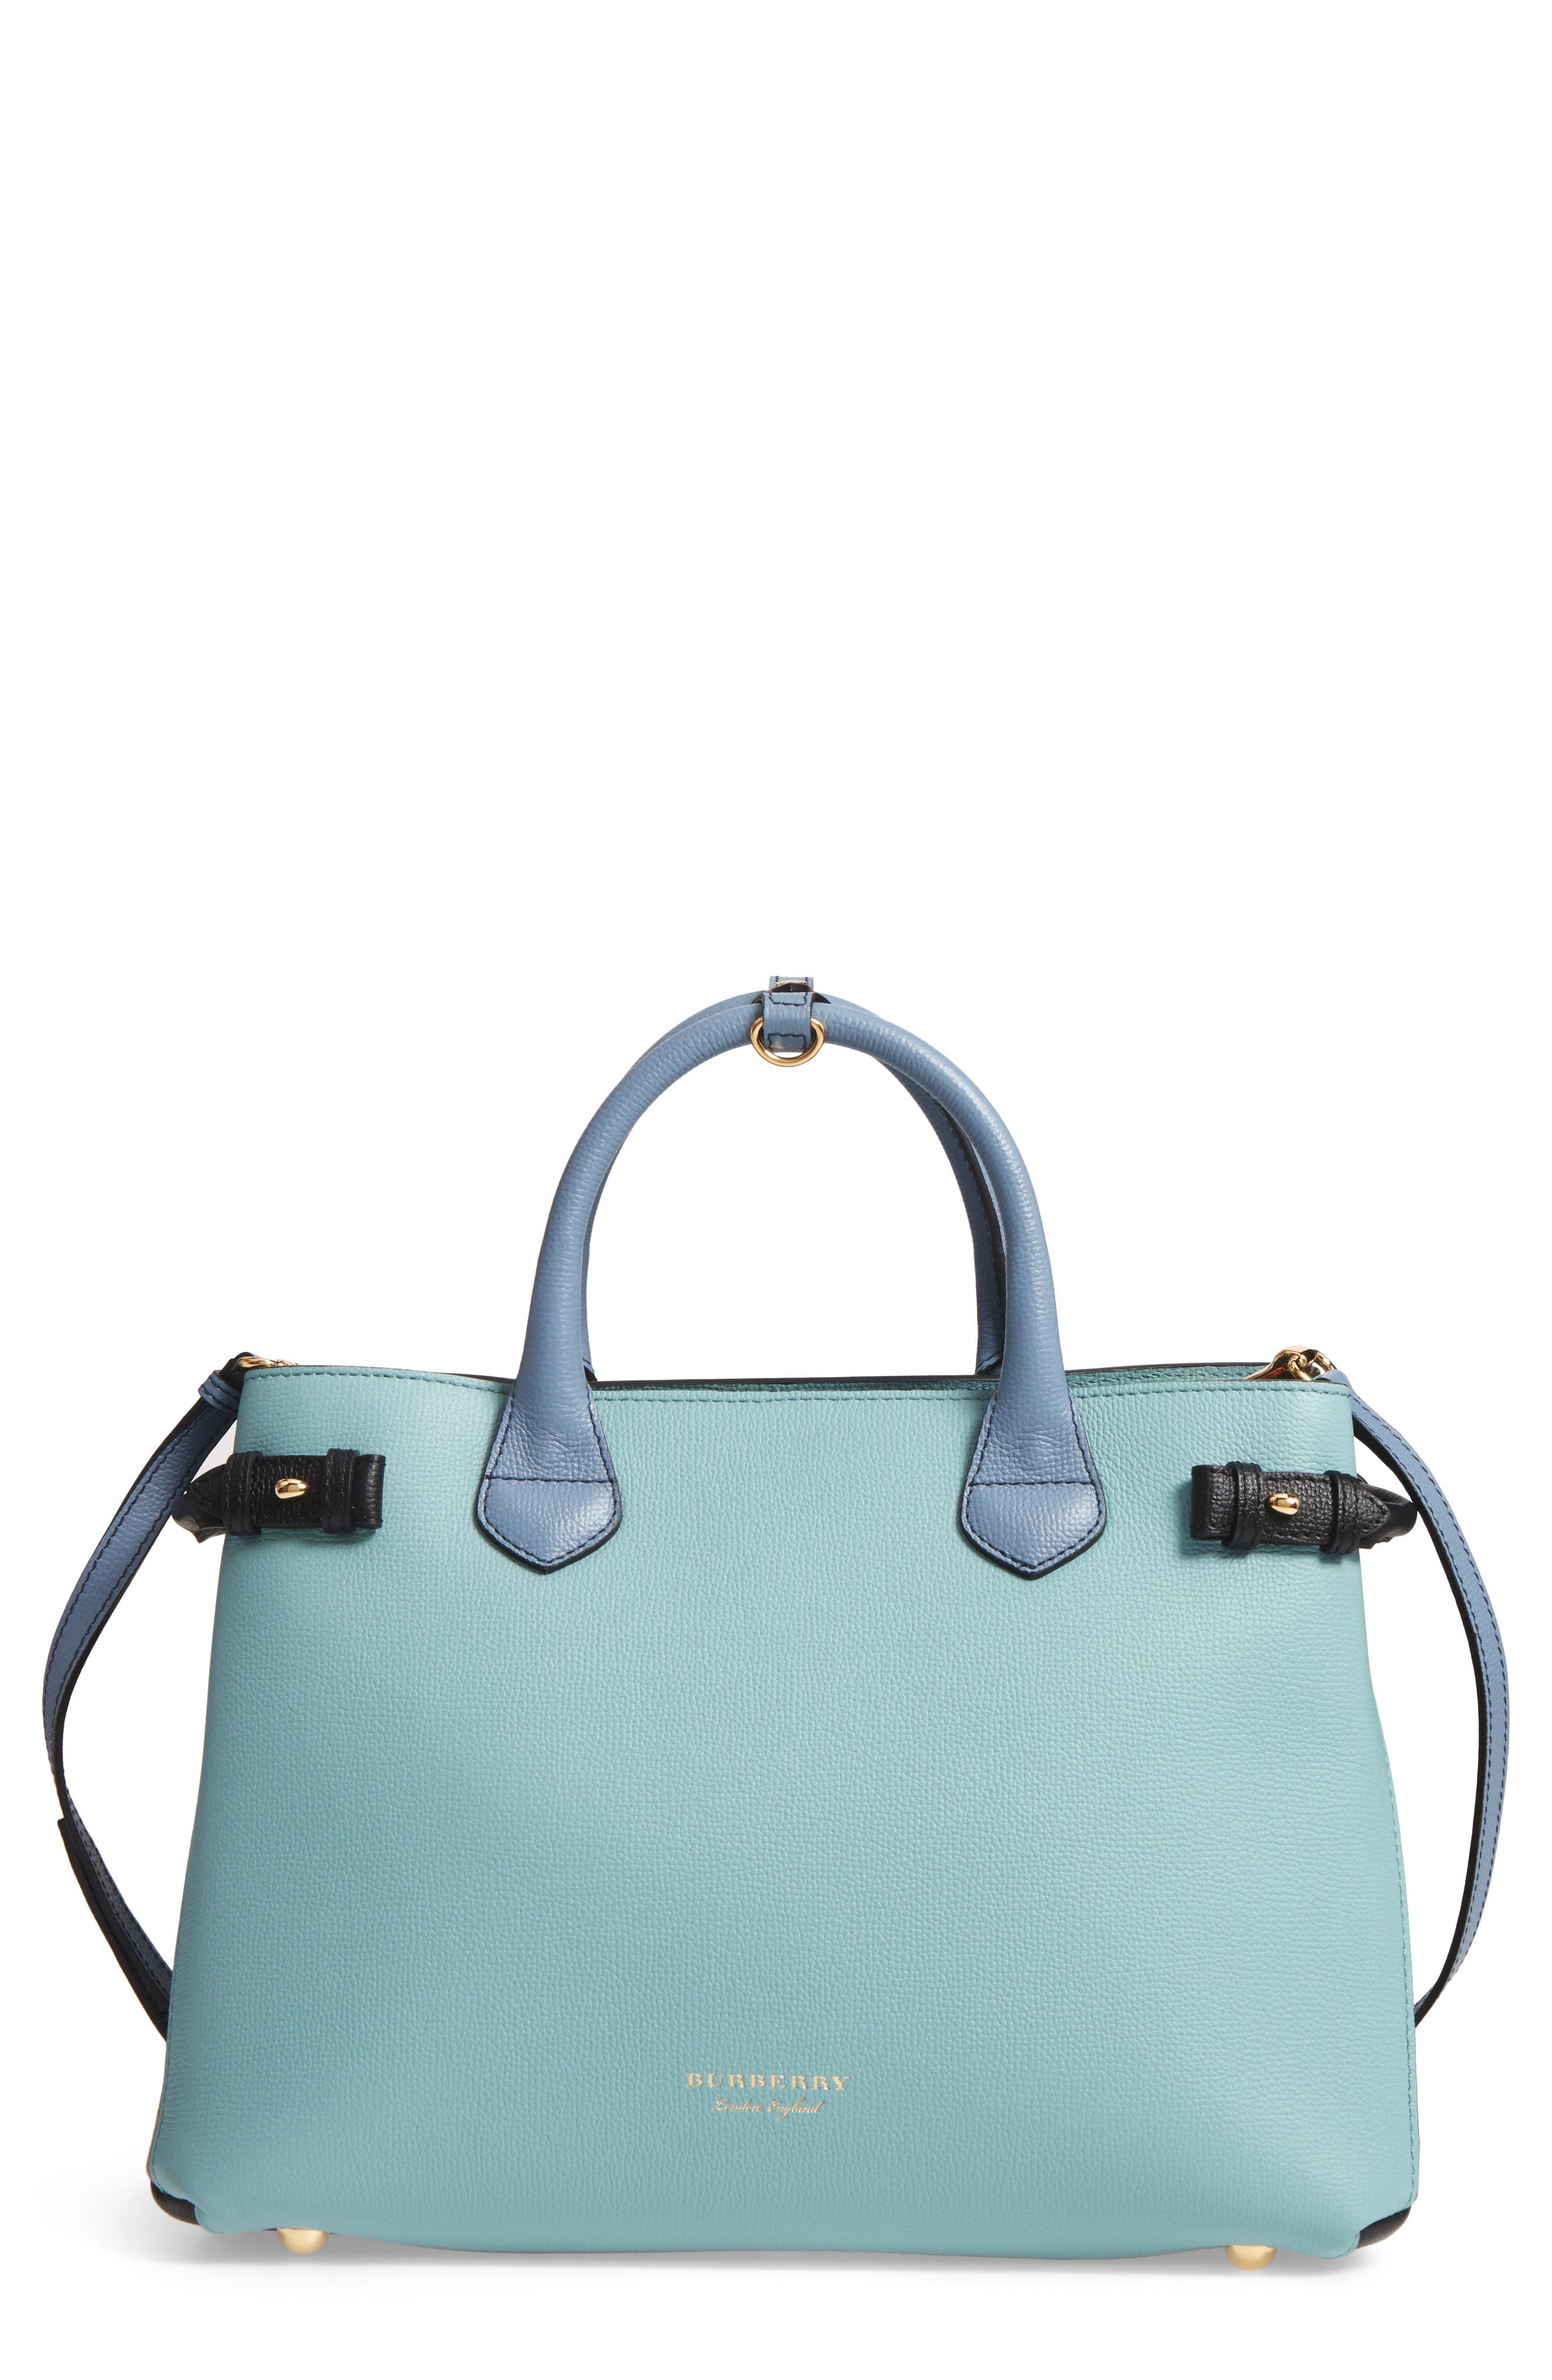 Medium Banner House Check & Leather Tote,                             Main thumbnail 1, color,                             453